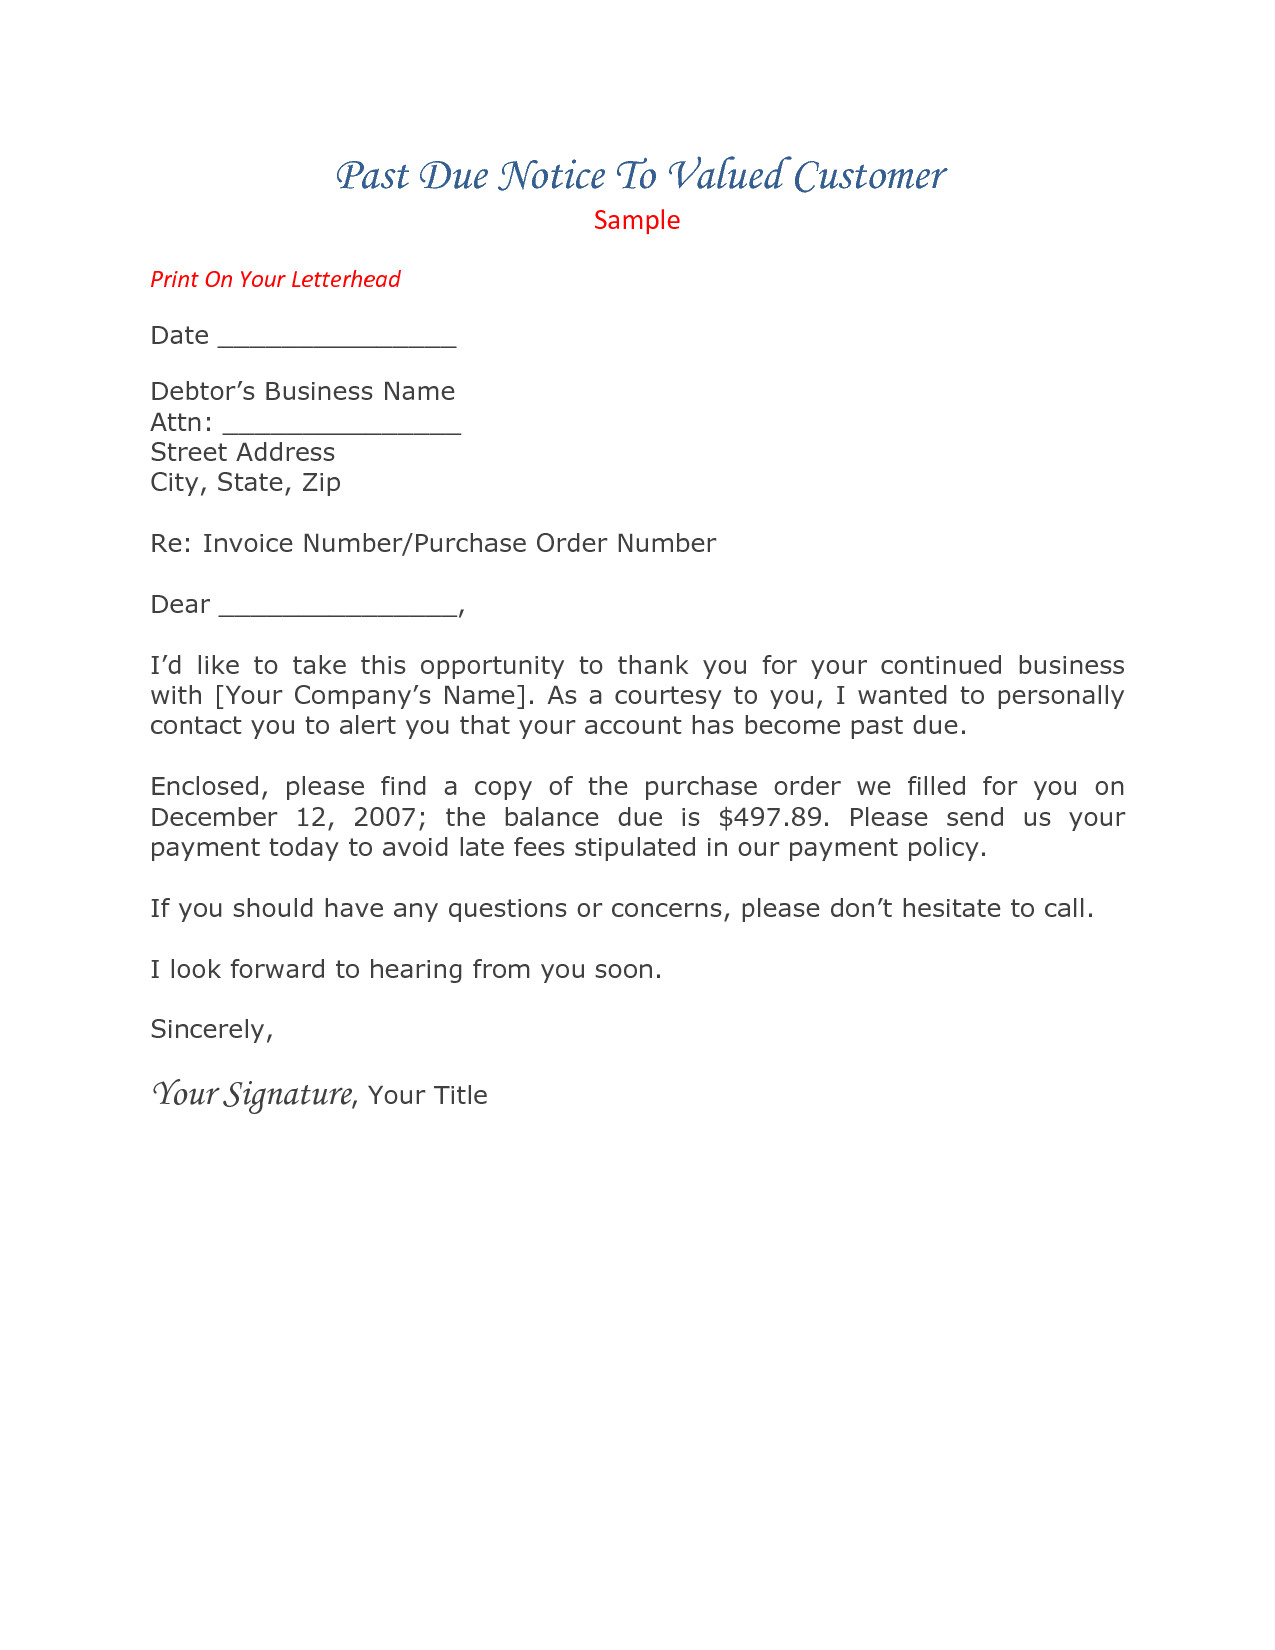 Past Due Rent Letter Template - Past Due Invoice Letter Awesome 20 New Payment Demand Letter